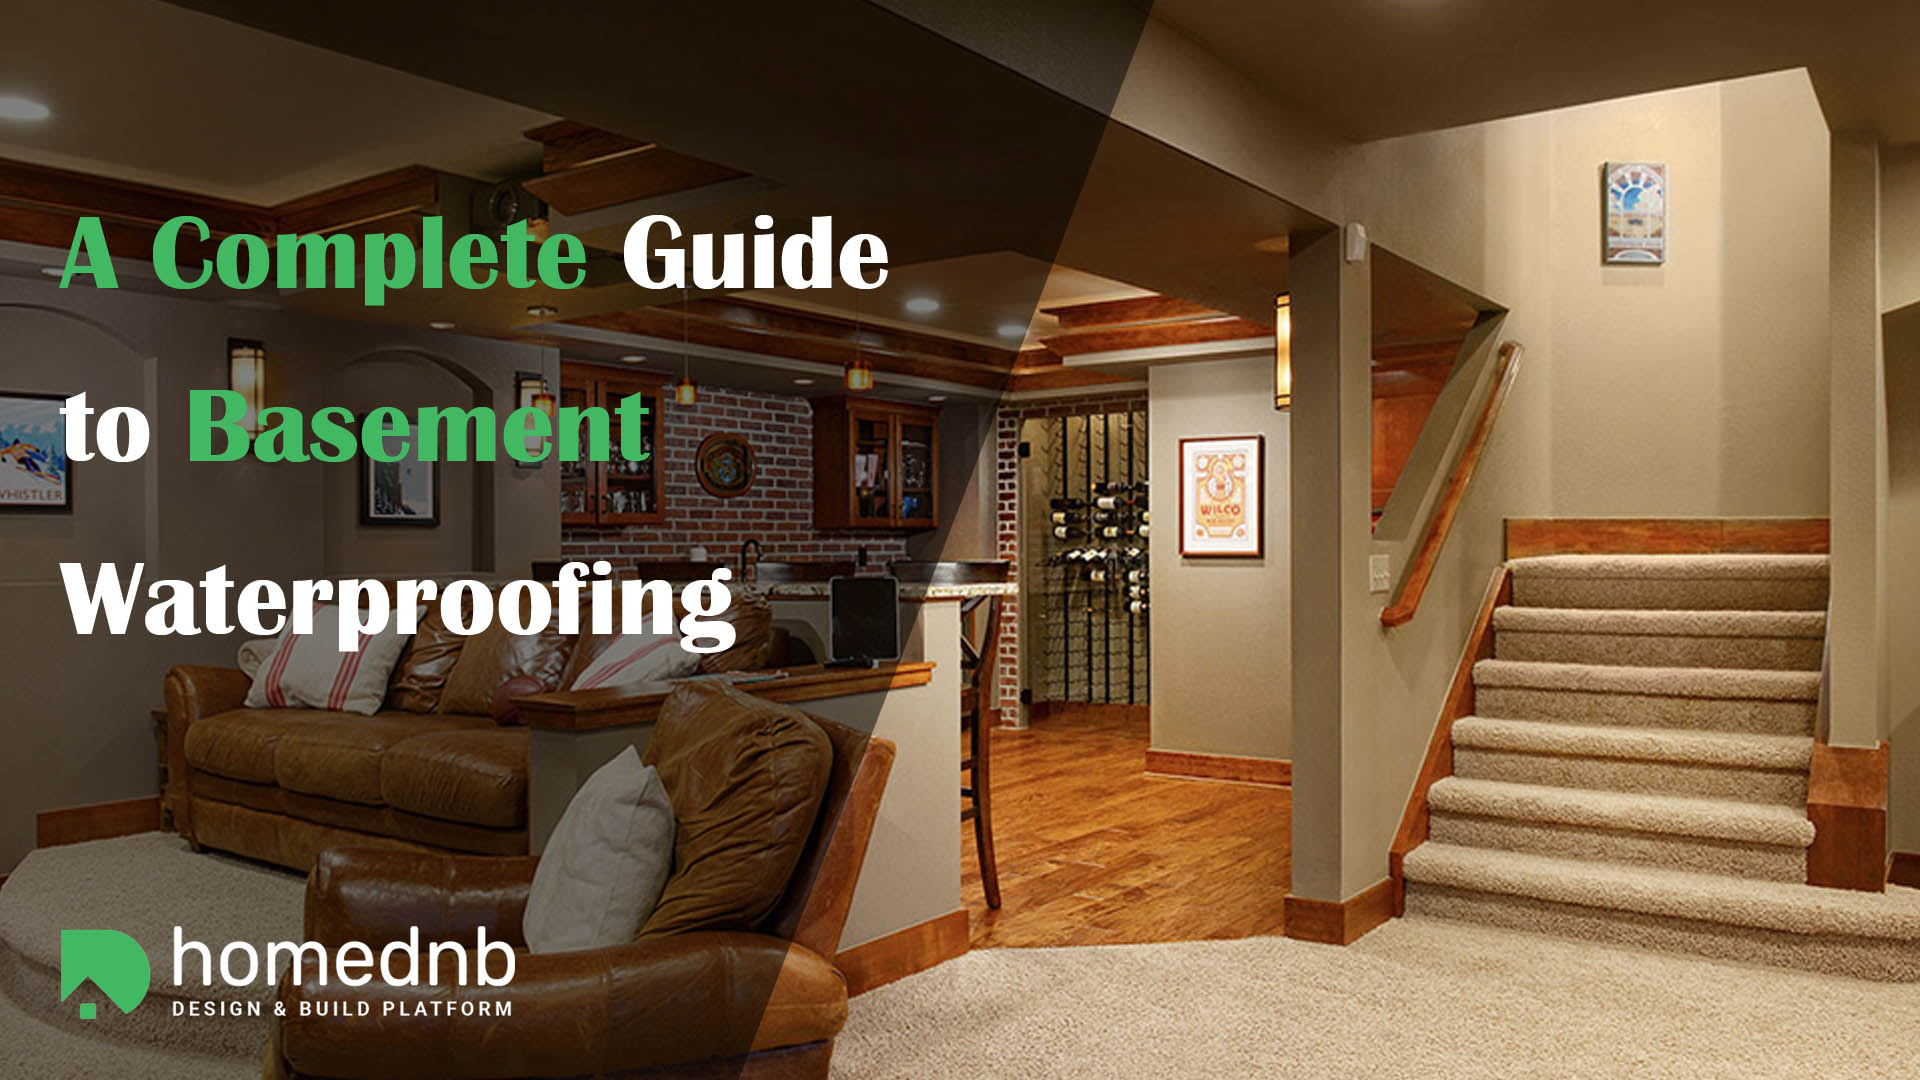 A Complete Guide to Basement Waterproofing